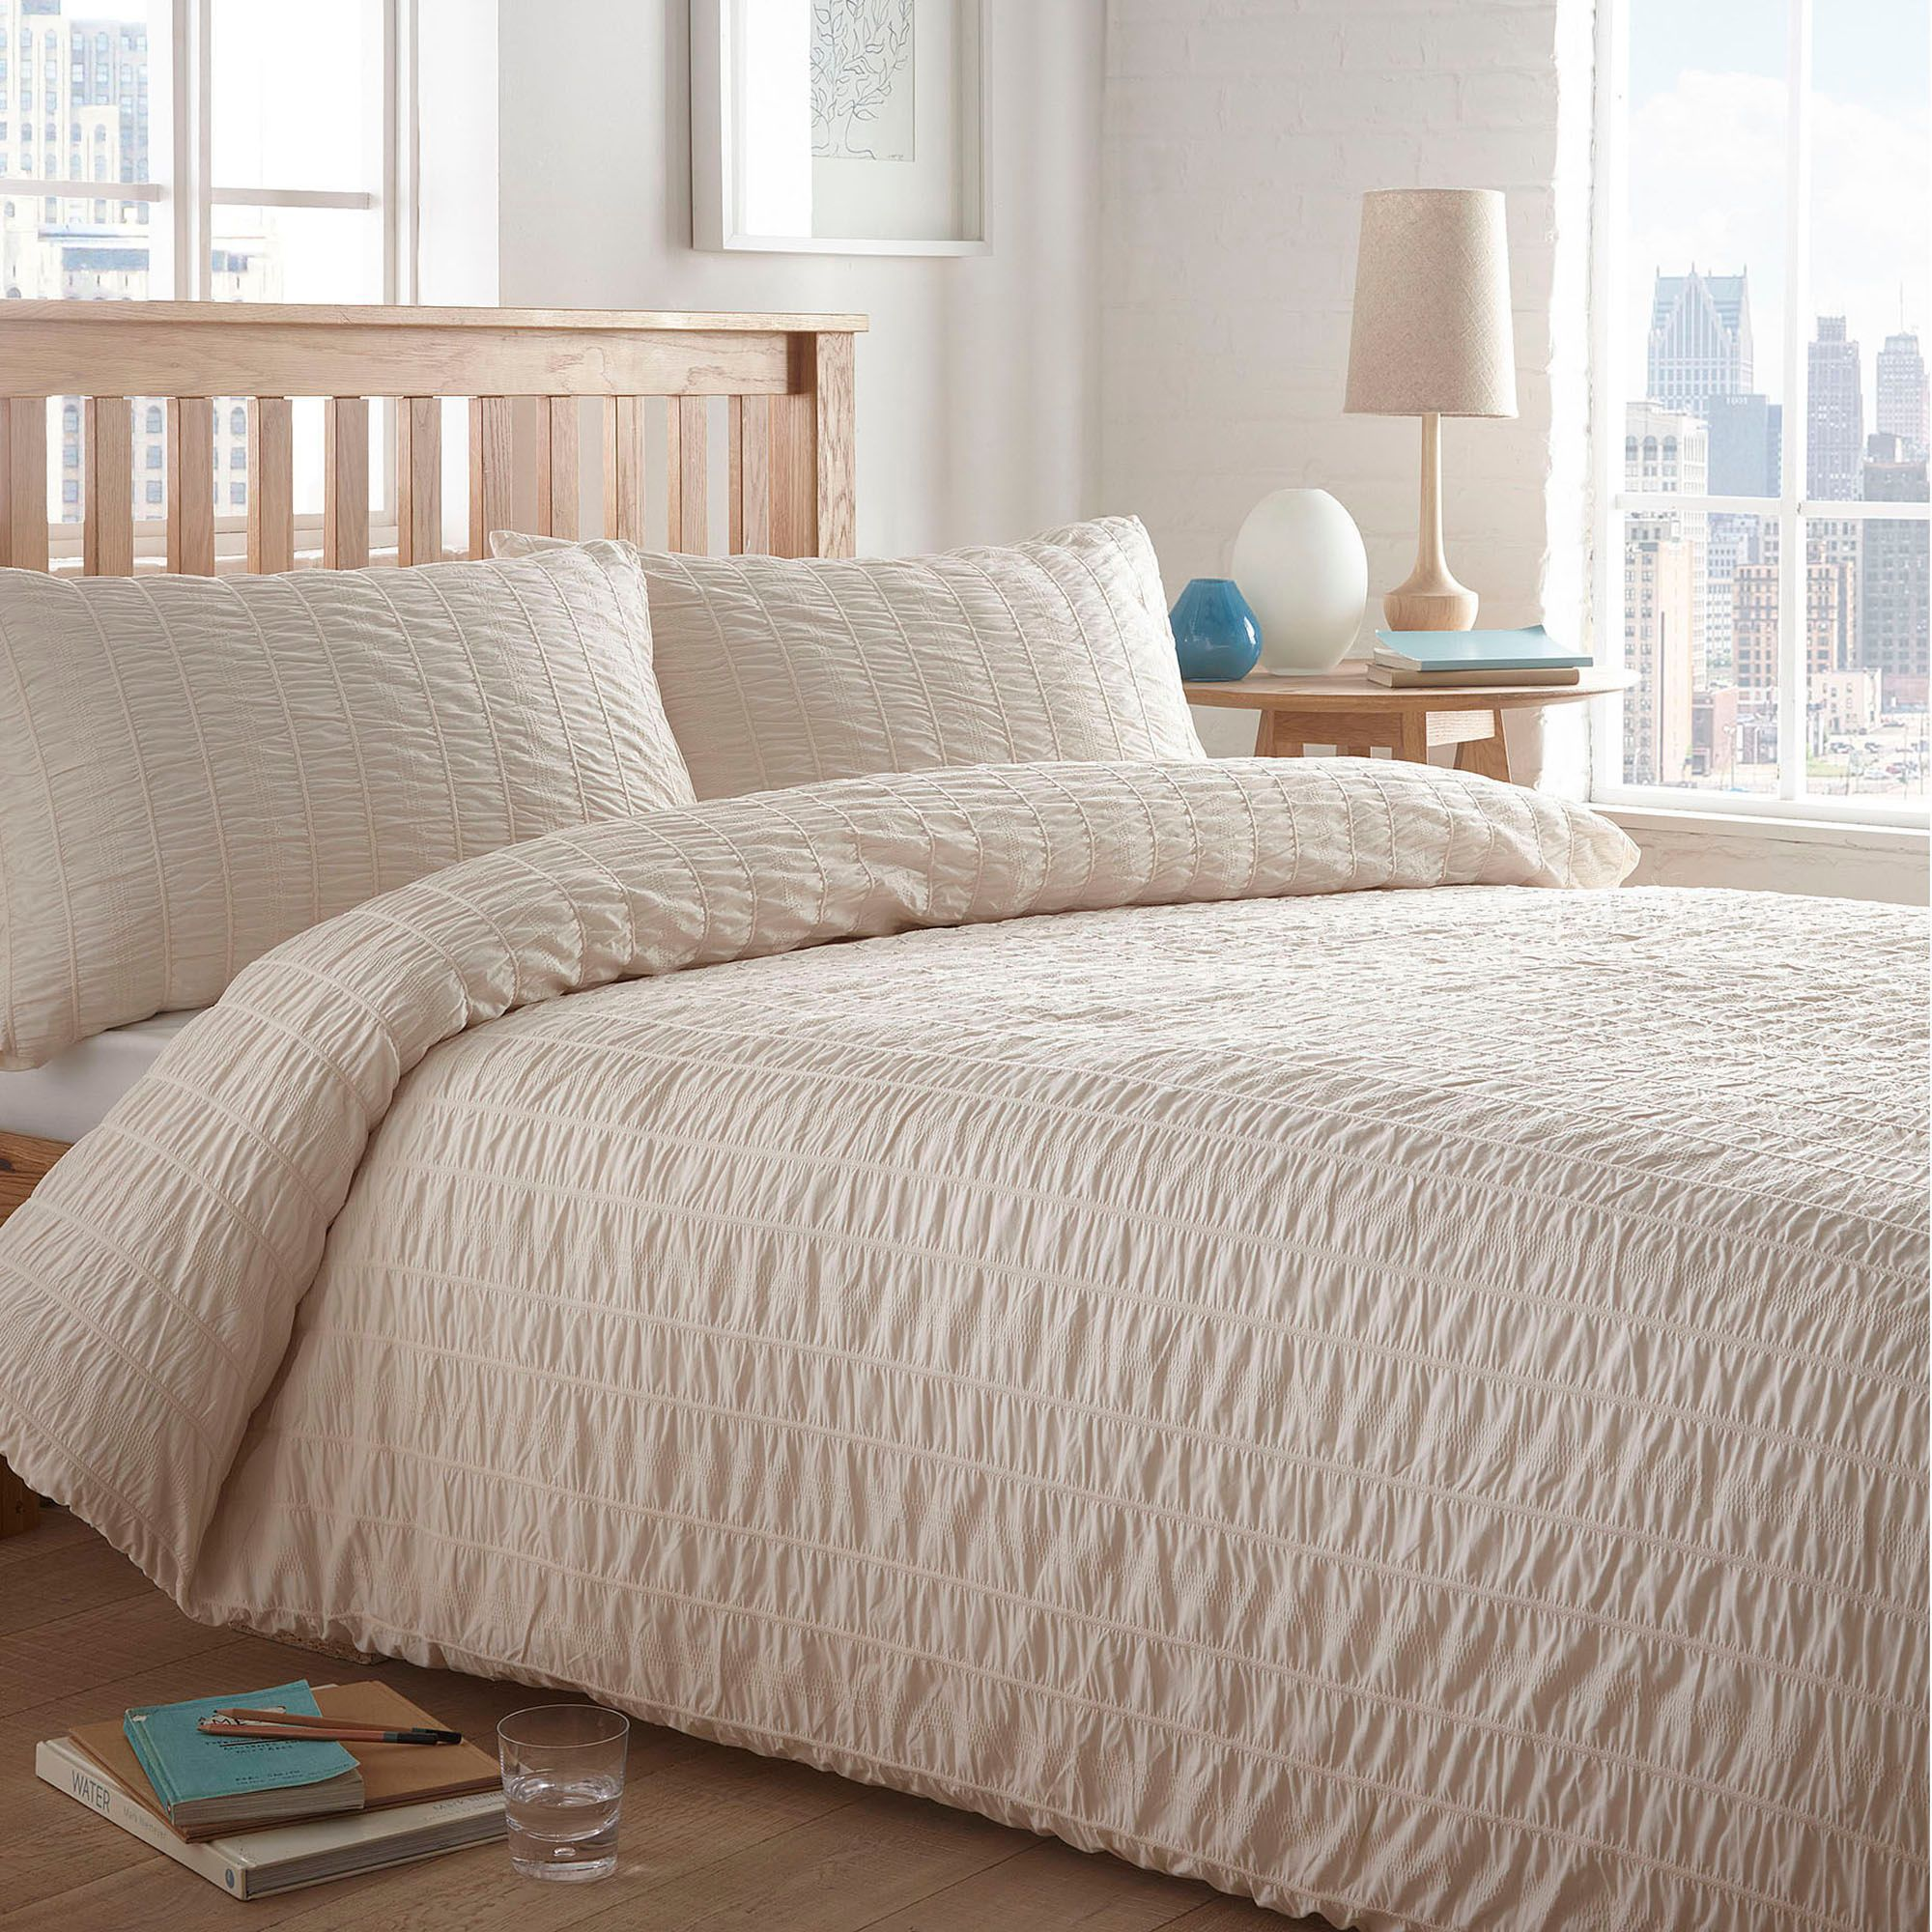 You searched for: seersucker bedding! Etsy is the home to thousands of handmade, vintage, and one-of-a-kind products and gifts related to your search. No matter what you're looking for or where you are in the world, our global marketplace of sellers can help you .